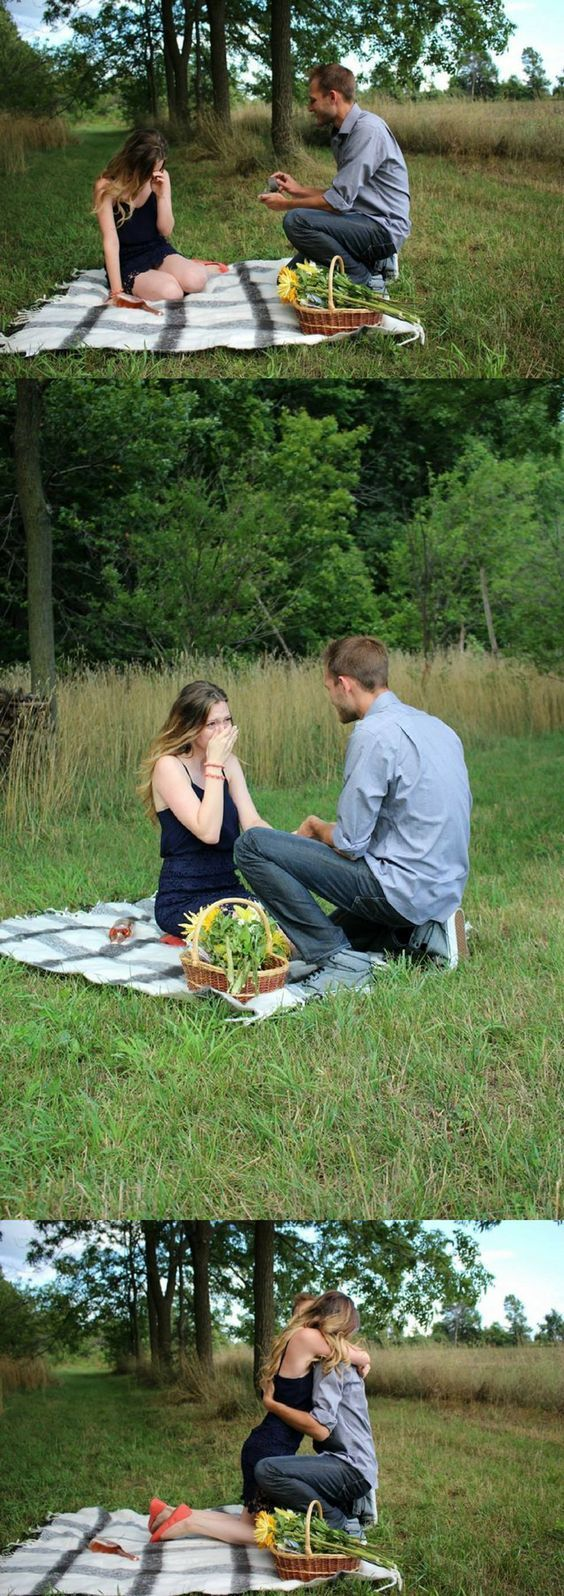 She had no idea that their anniversary photoshoot was all part of his marriage proposal plan!